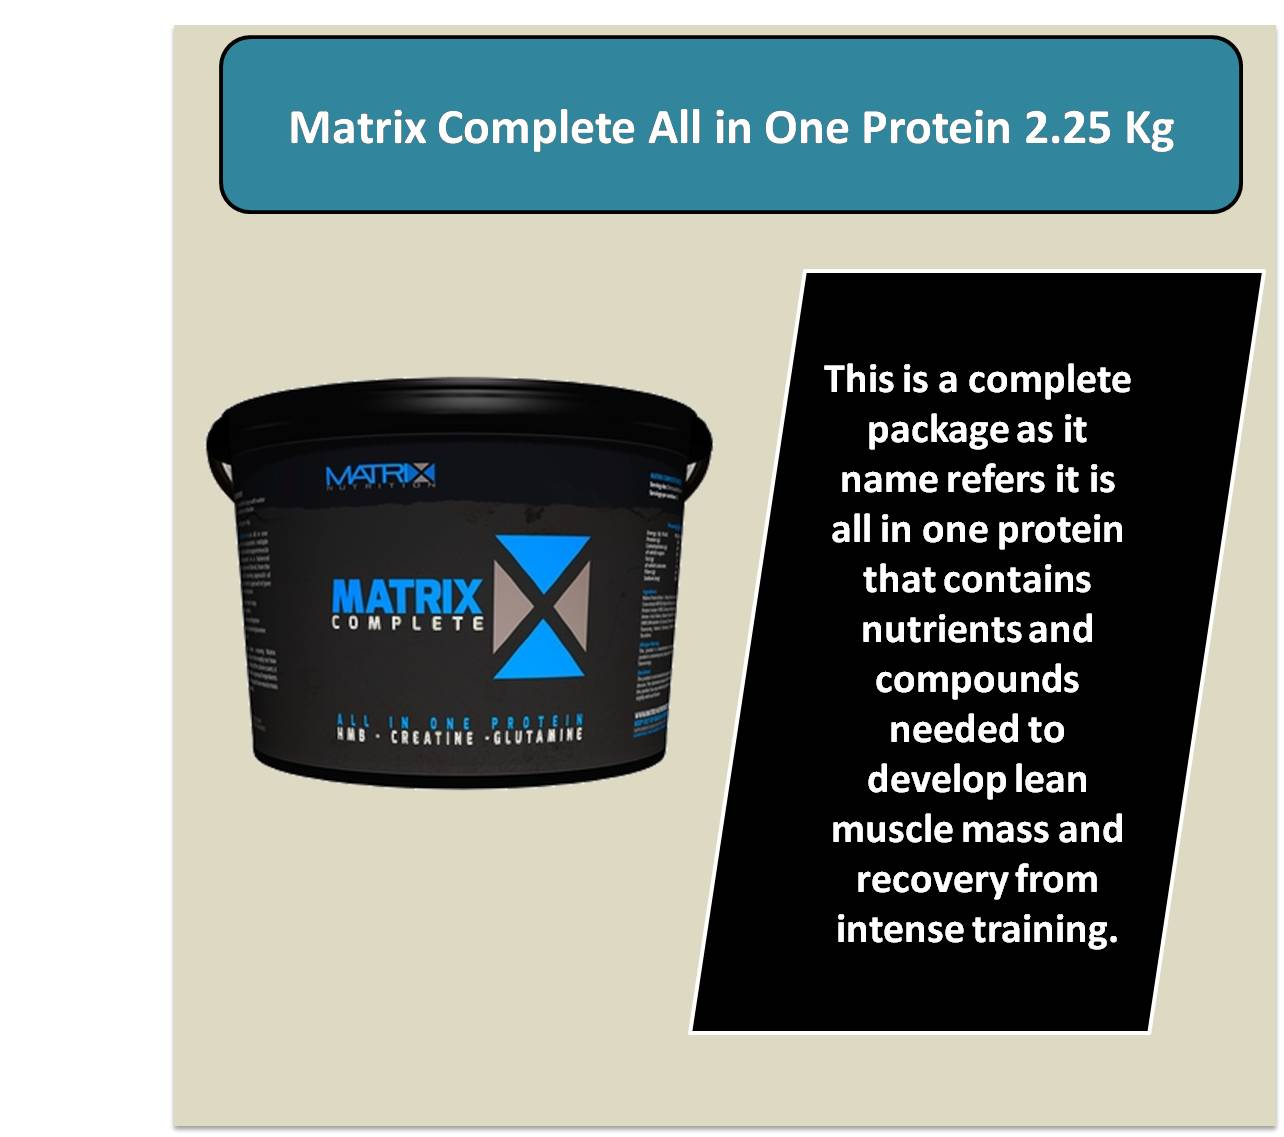 Matrix Complete All in One Protein 2.25 Kg